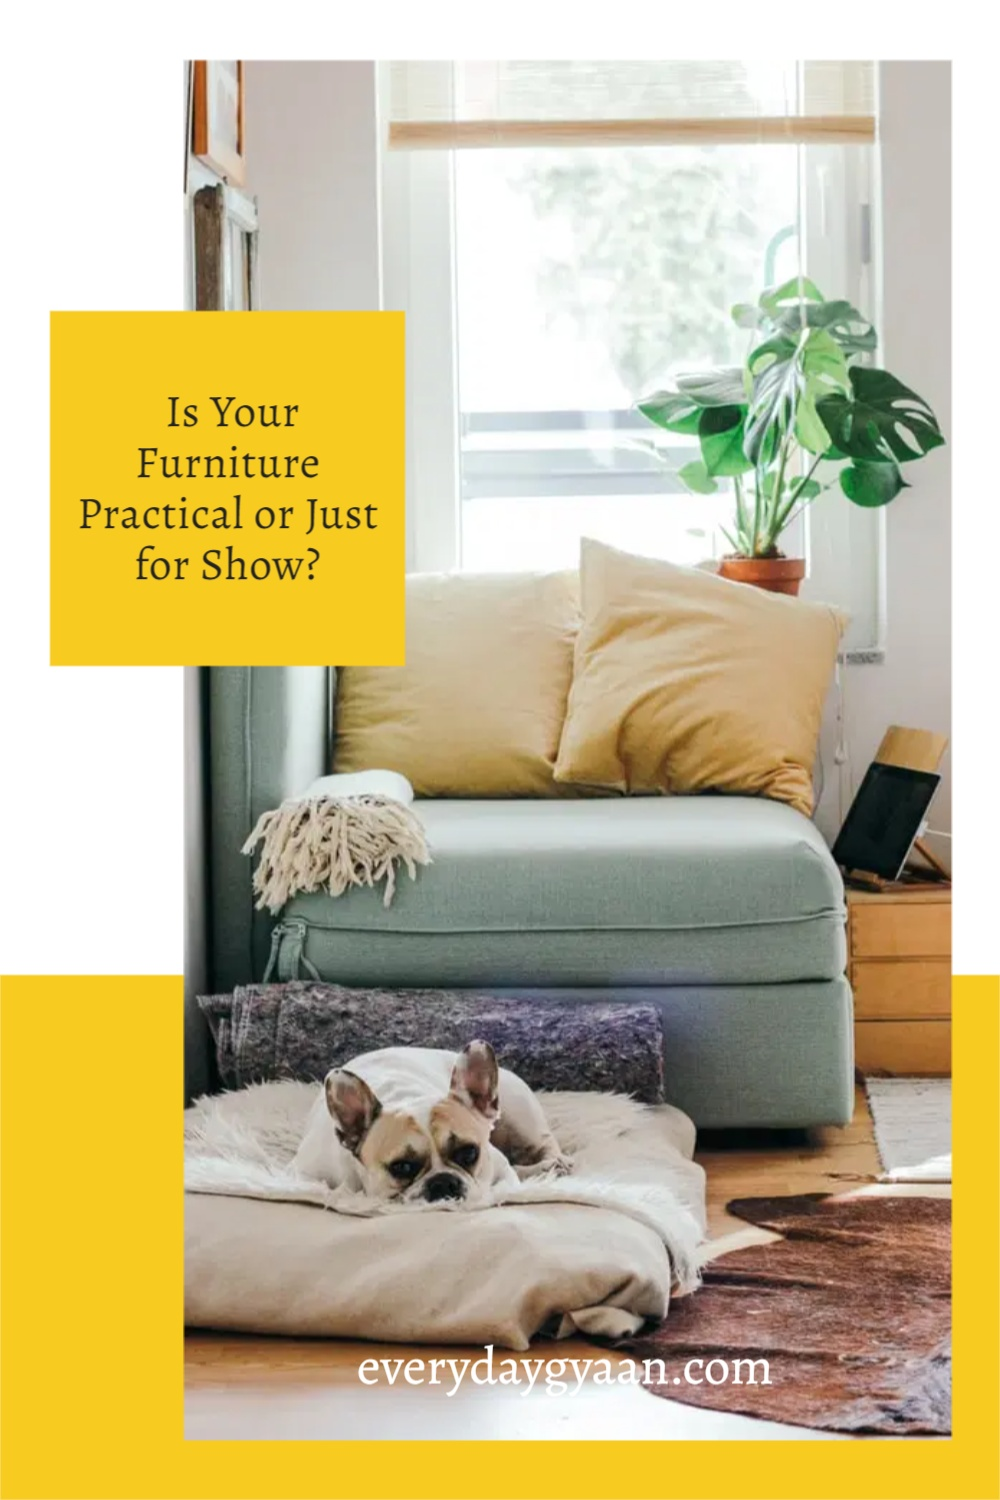 Is Your Furniture Practical or Just for Show?